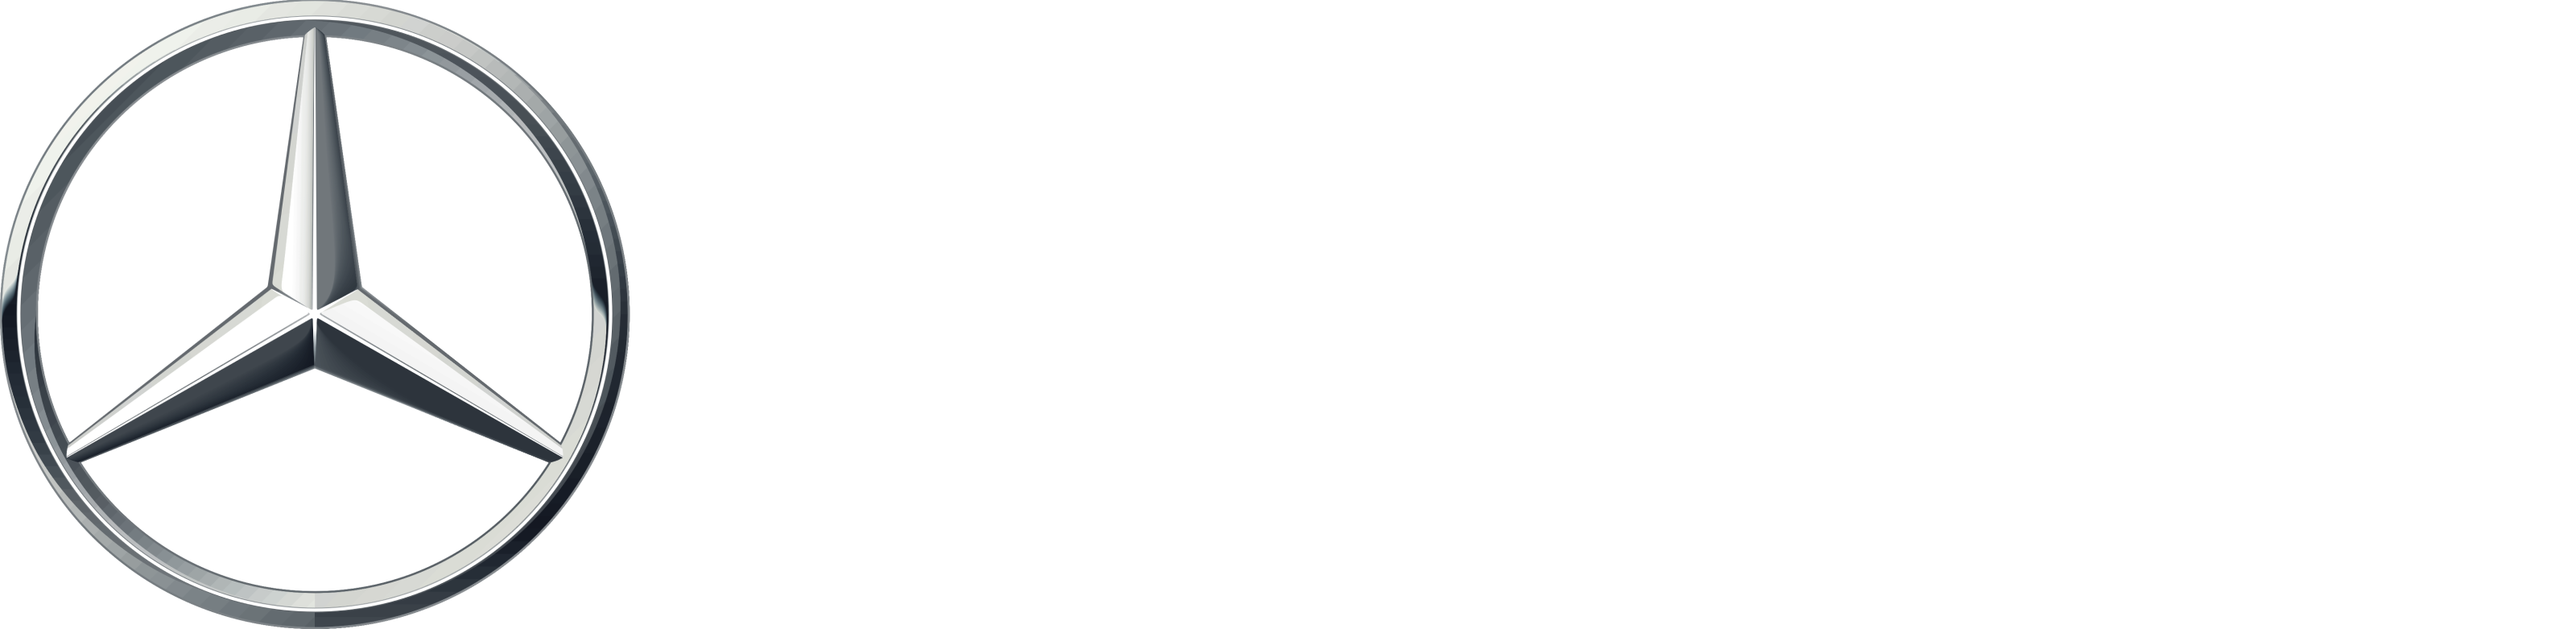 Logotipo Mercedes-Benz